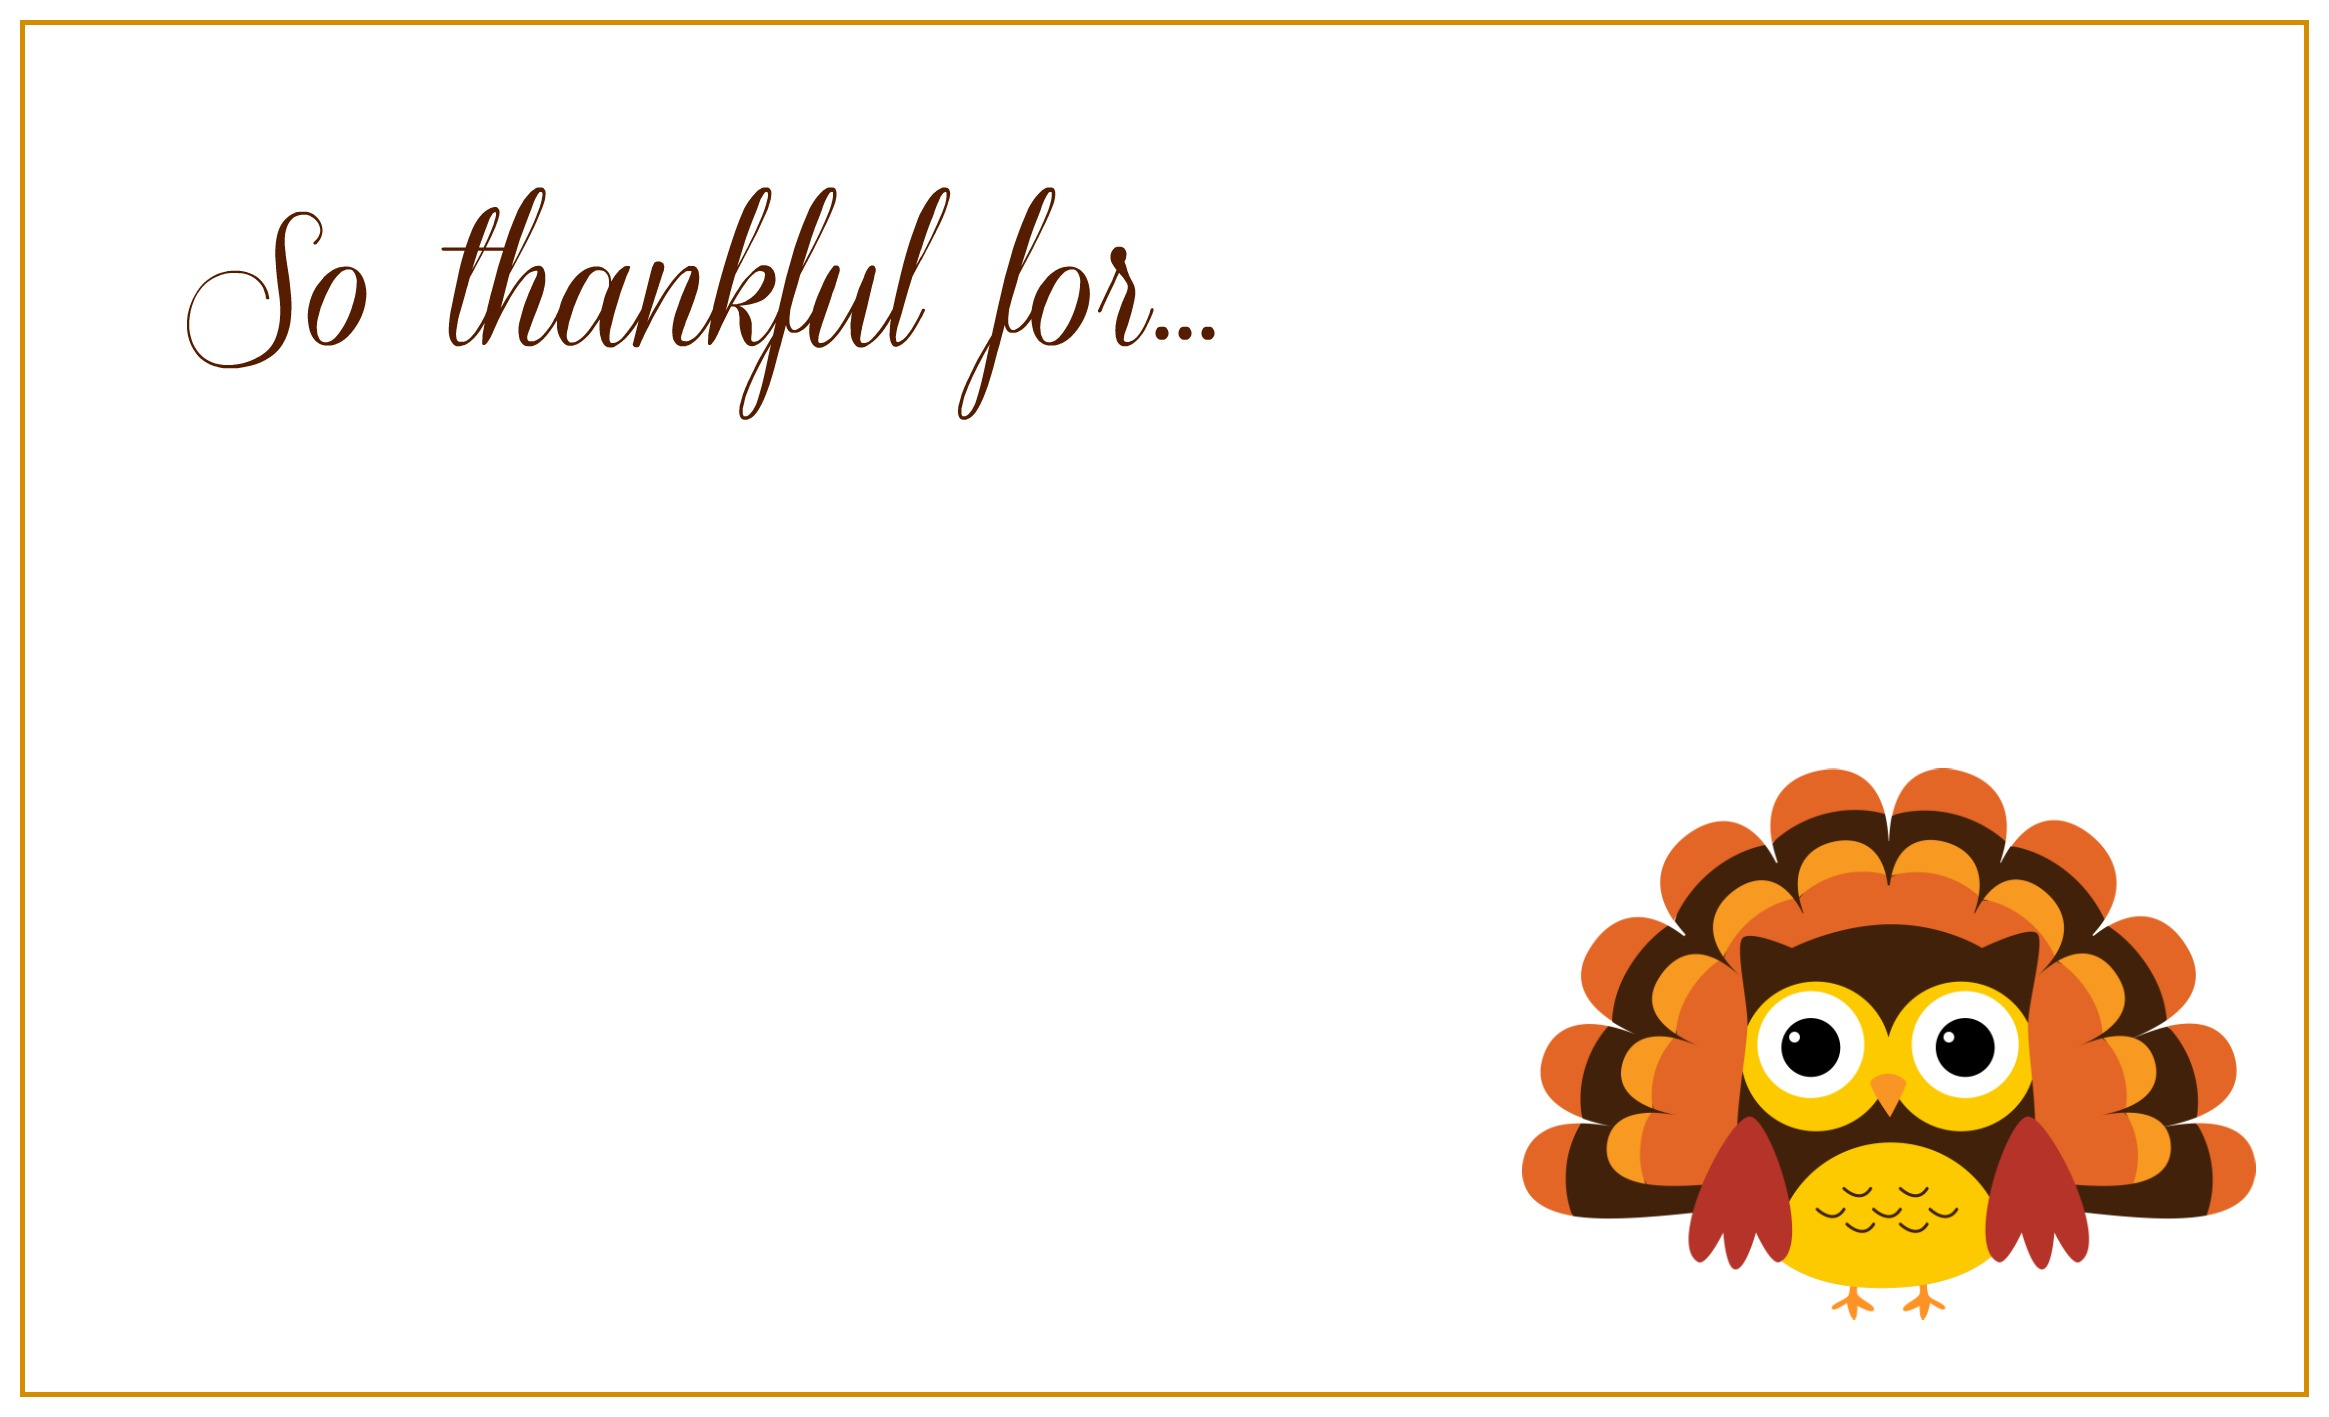 Comprehensive image with regard to thanksgiving printable templates